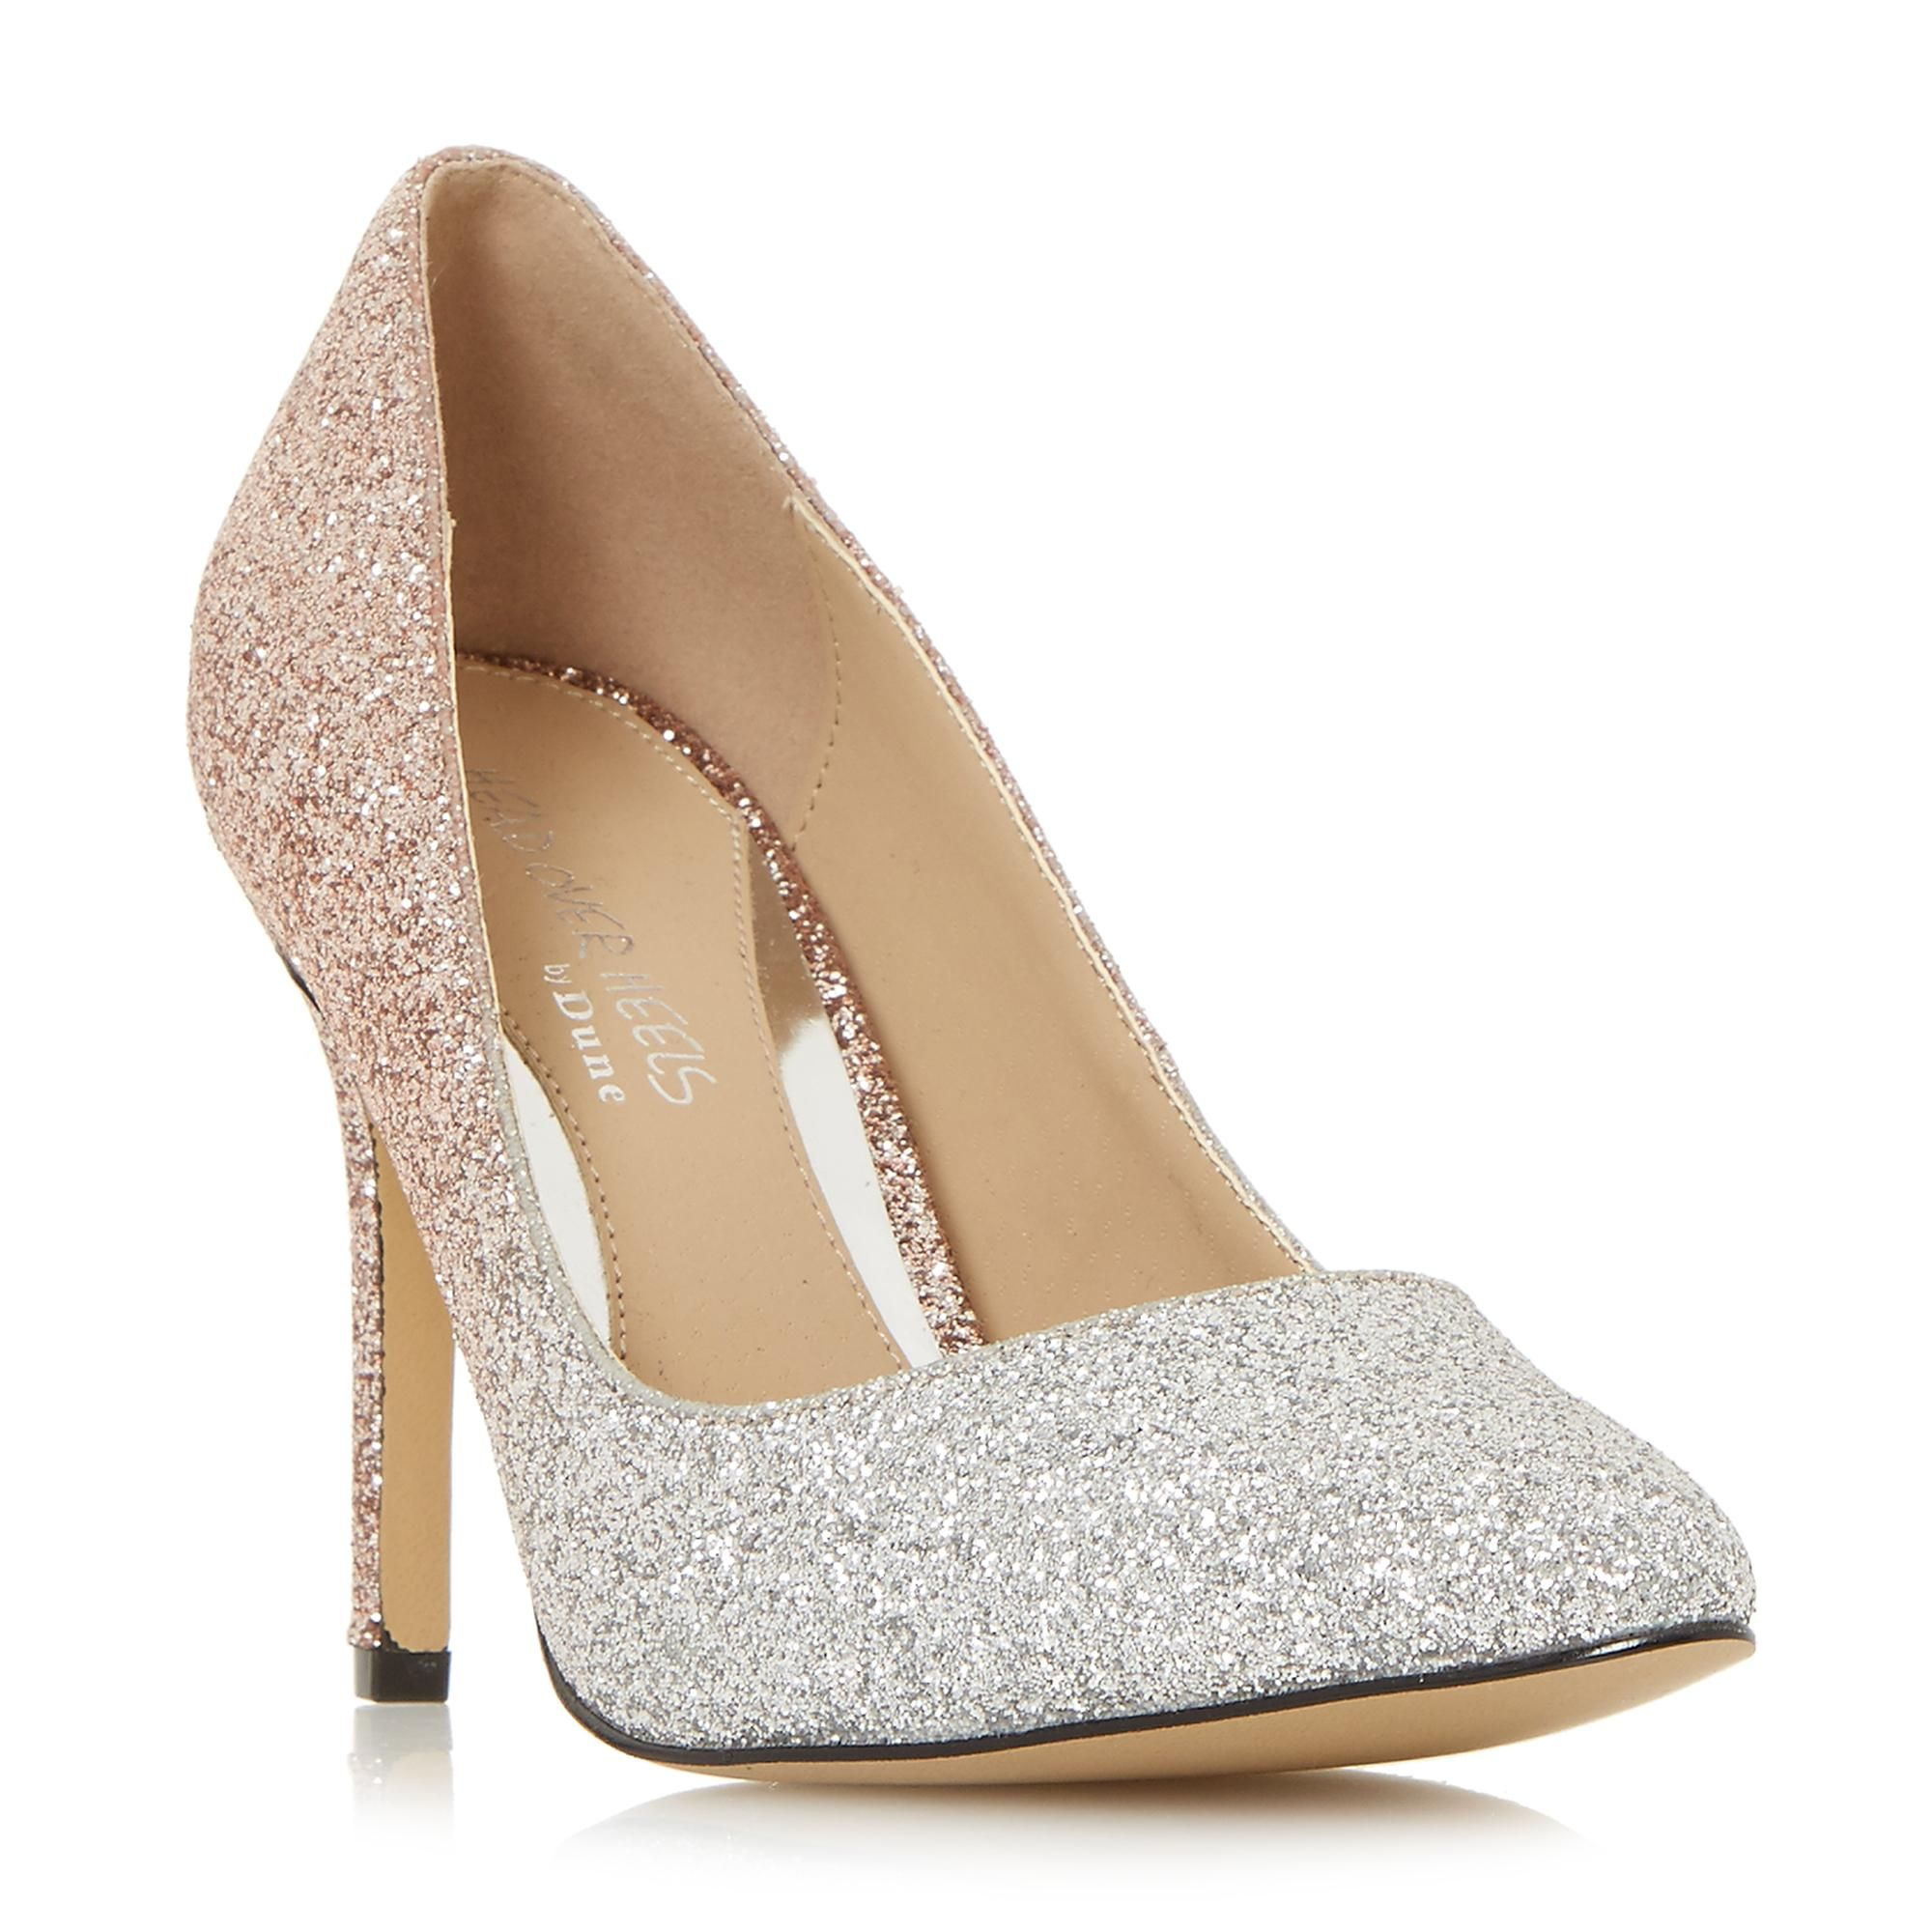 HEAD OVER HEELS AVANDRA - Ombre Glitter Court Shoe - rose gold | Dune Shoes  Online